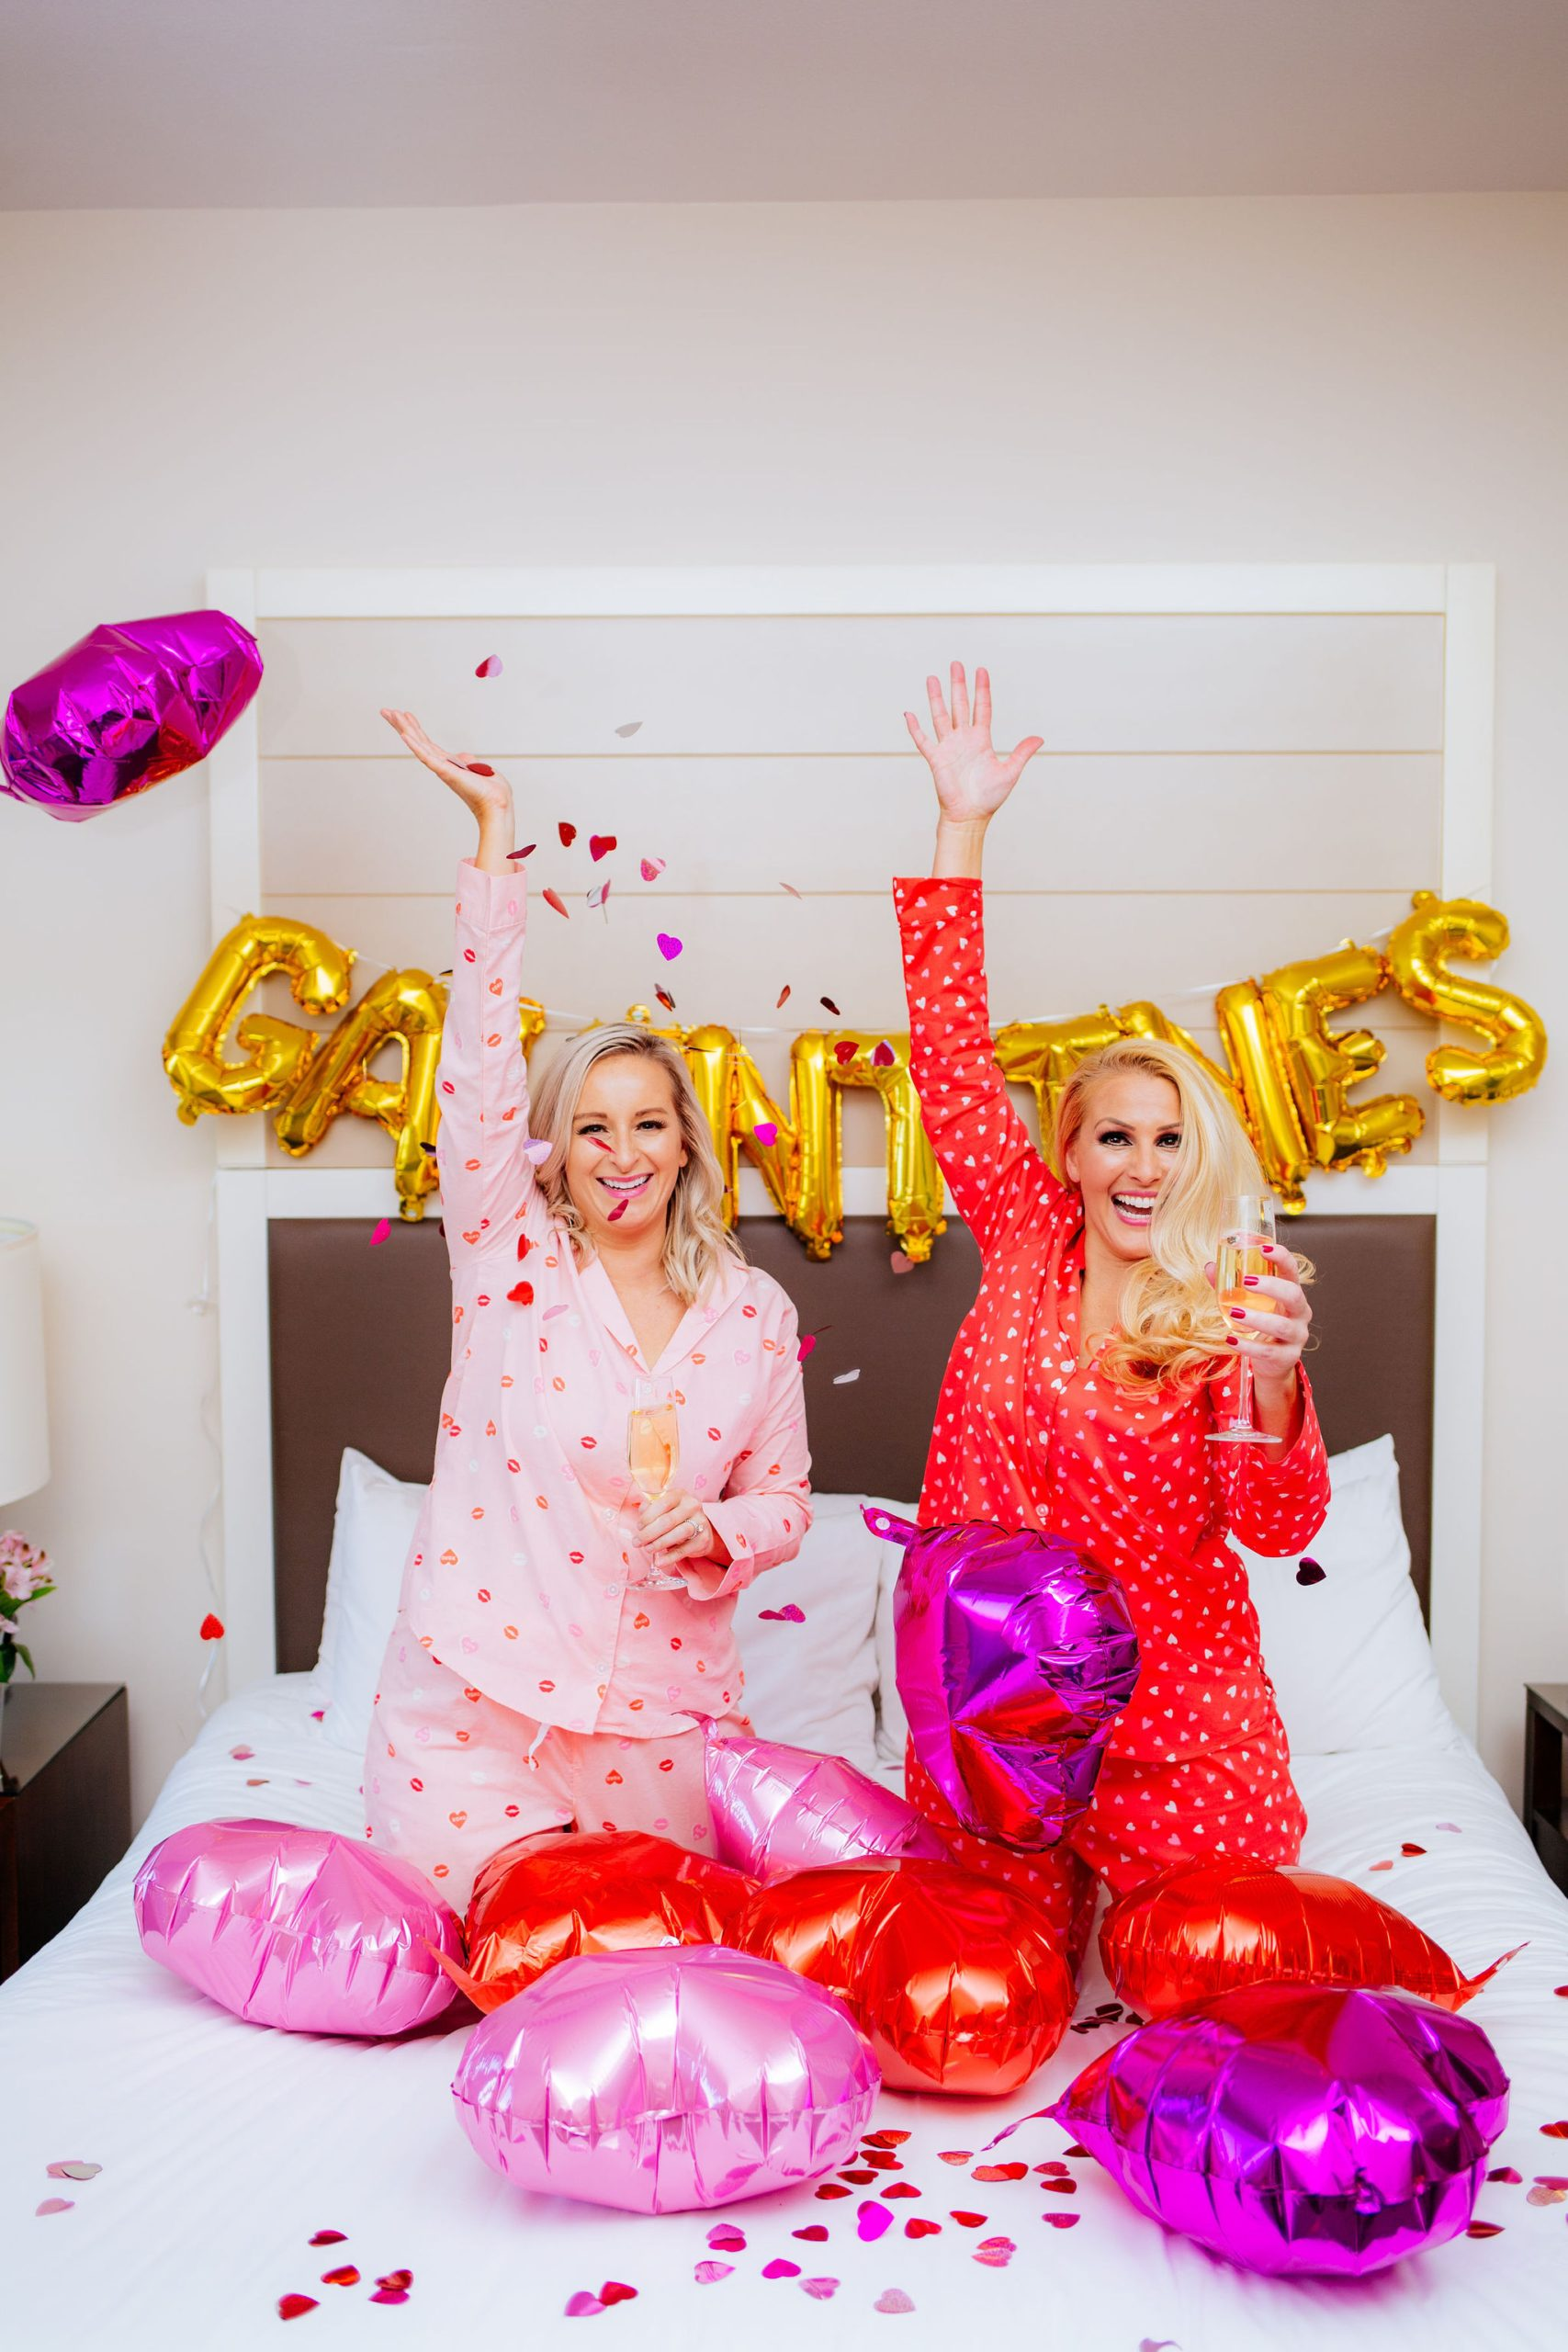 Tampa Fashion Bloggers Jenn Truman @jtstjtst11 and Jill DiGioia at the Epicurean Hotel, Autograph Collection in their room in pink and red Old Navy Valentine's day pajamas. They are throwing heart confetti and drinking chamgange.